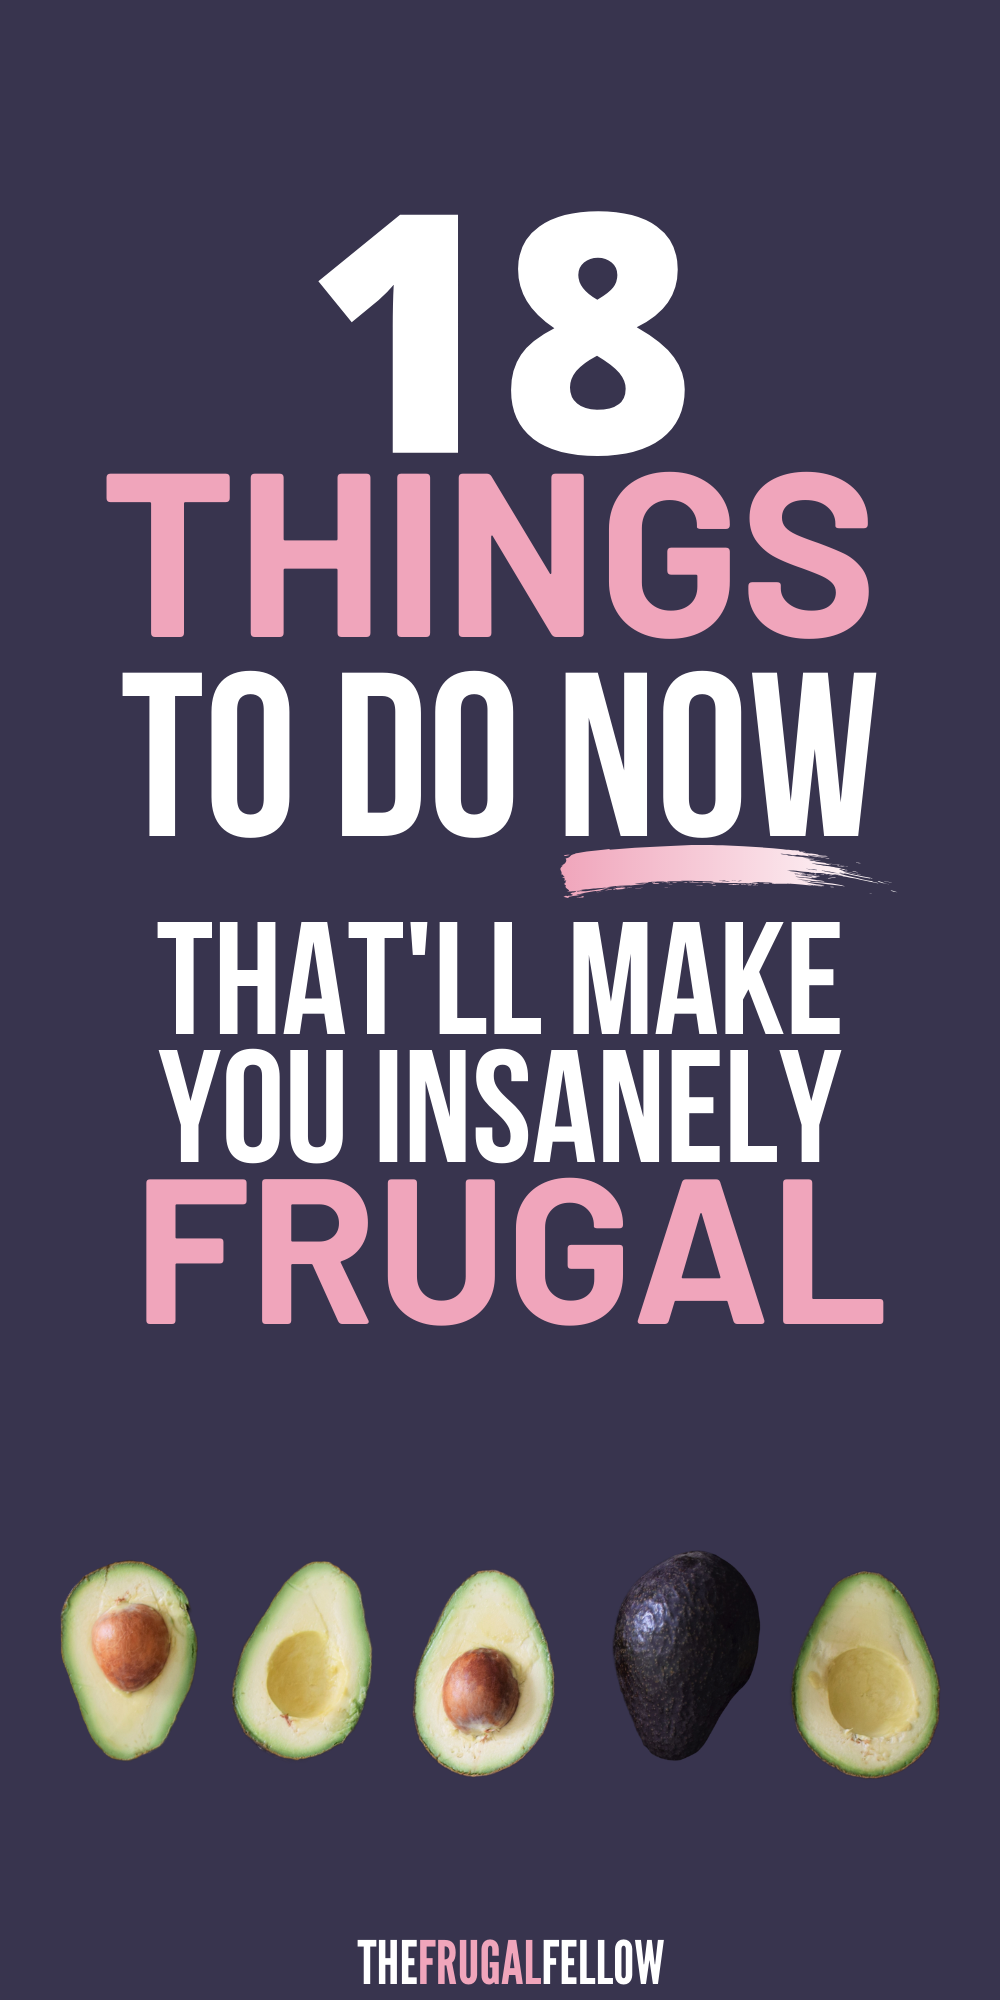 With more and more people looking to save money these days, you could probably use some great frugal living tips. You'll also find money saving tips and tricks, how to start budgeting, and frugal ideas here. This post is your start to frugal living!